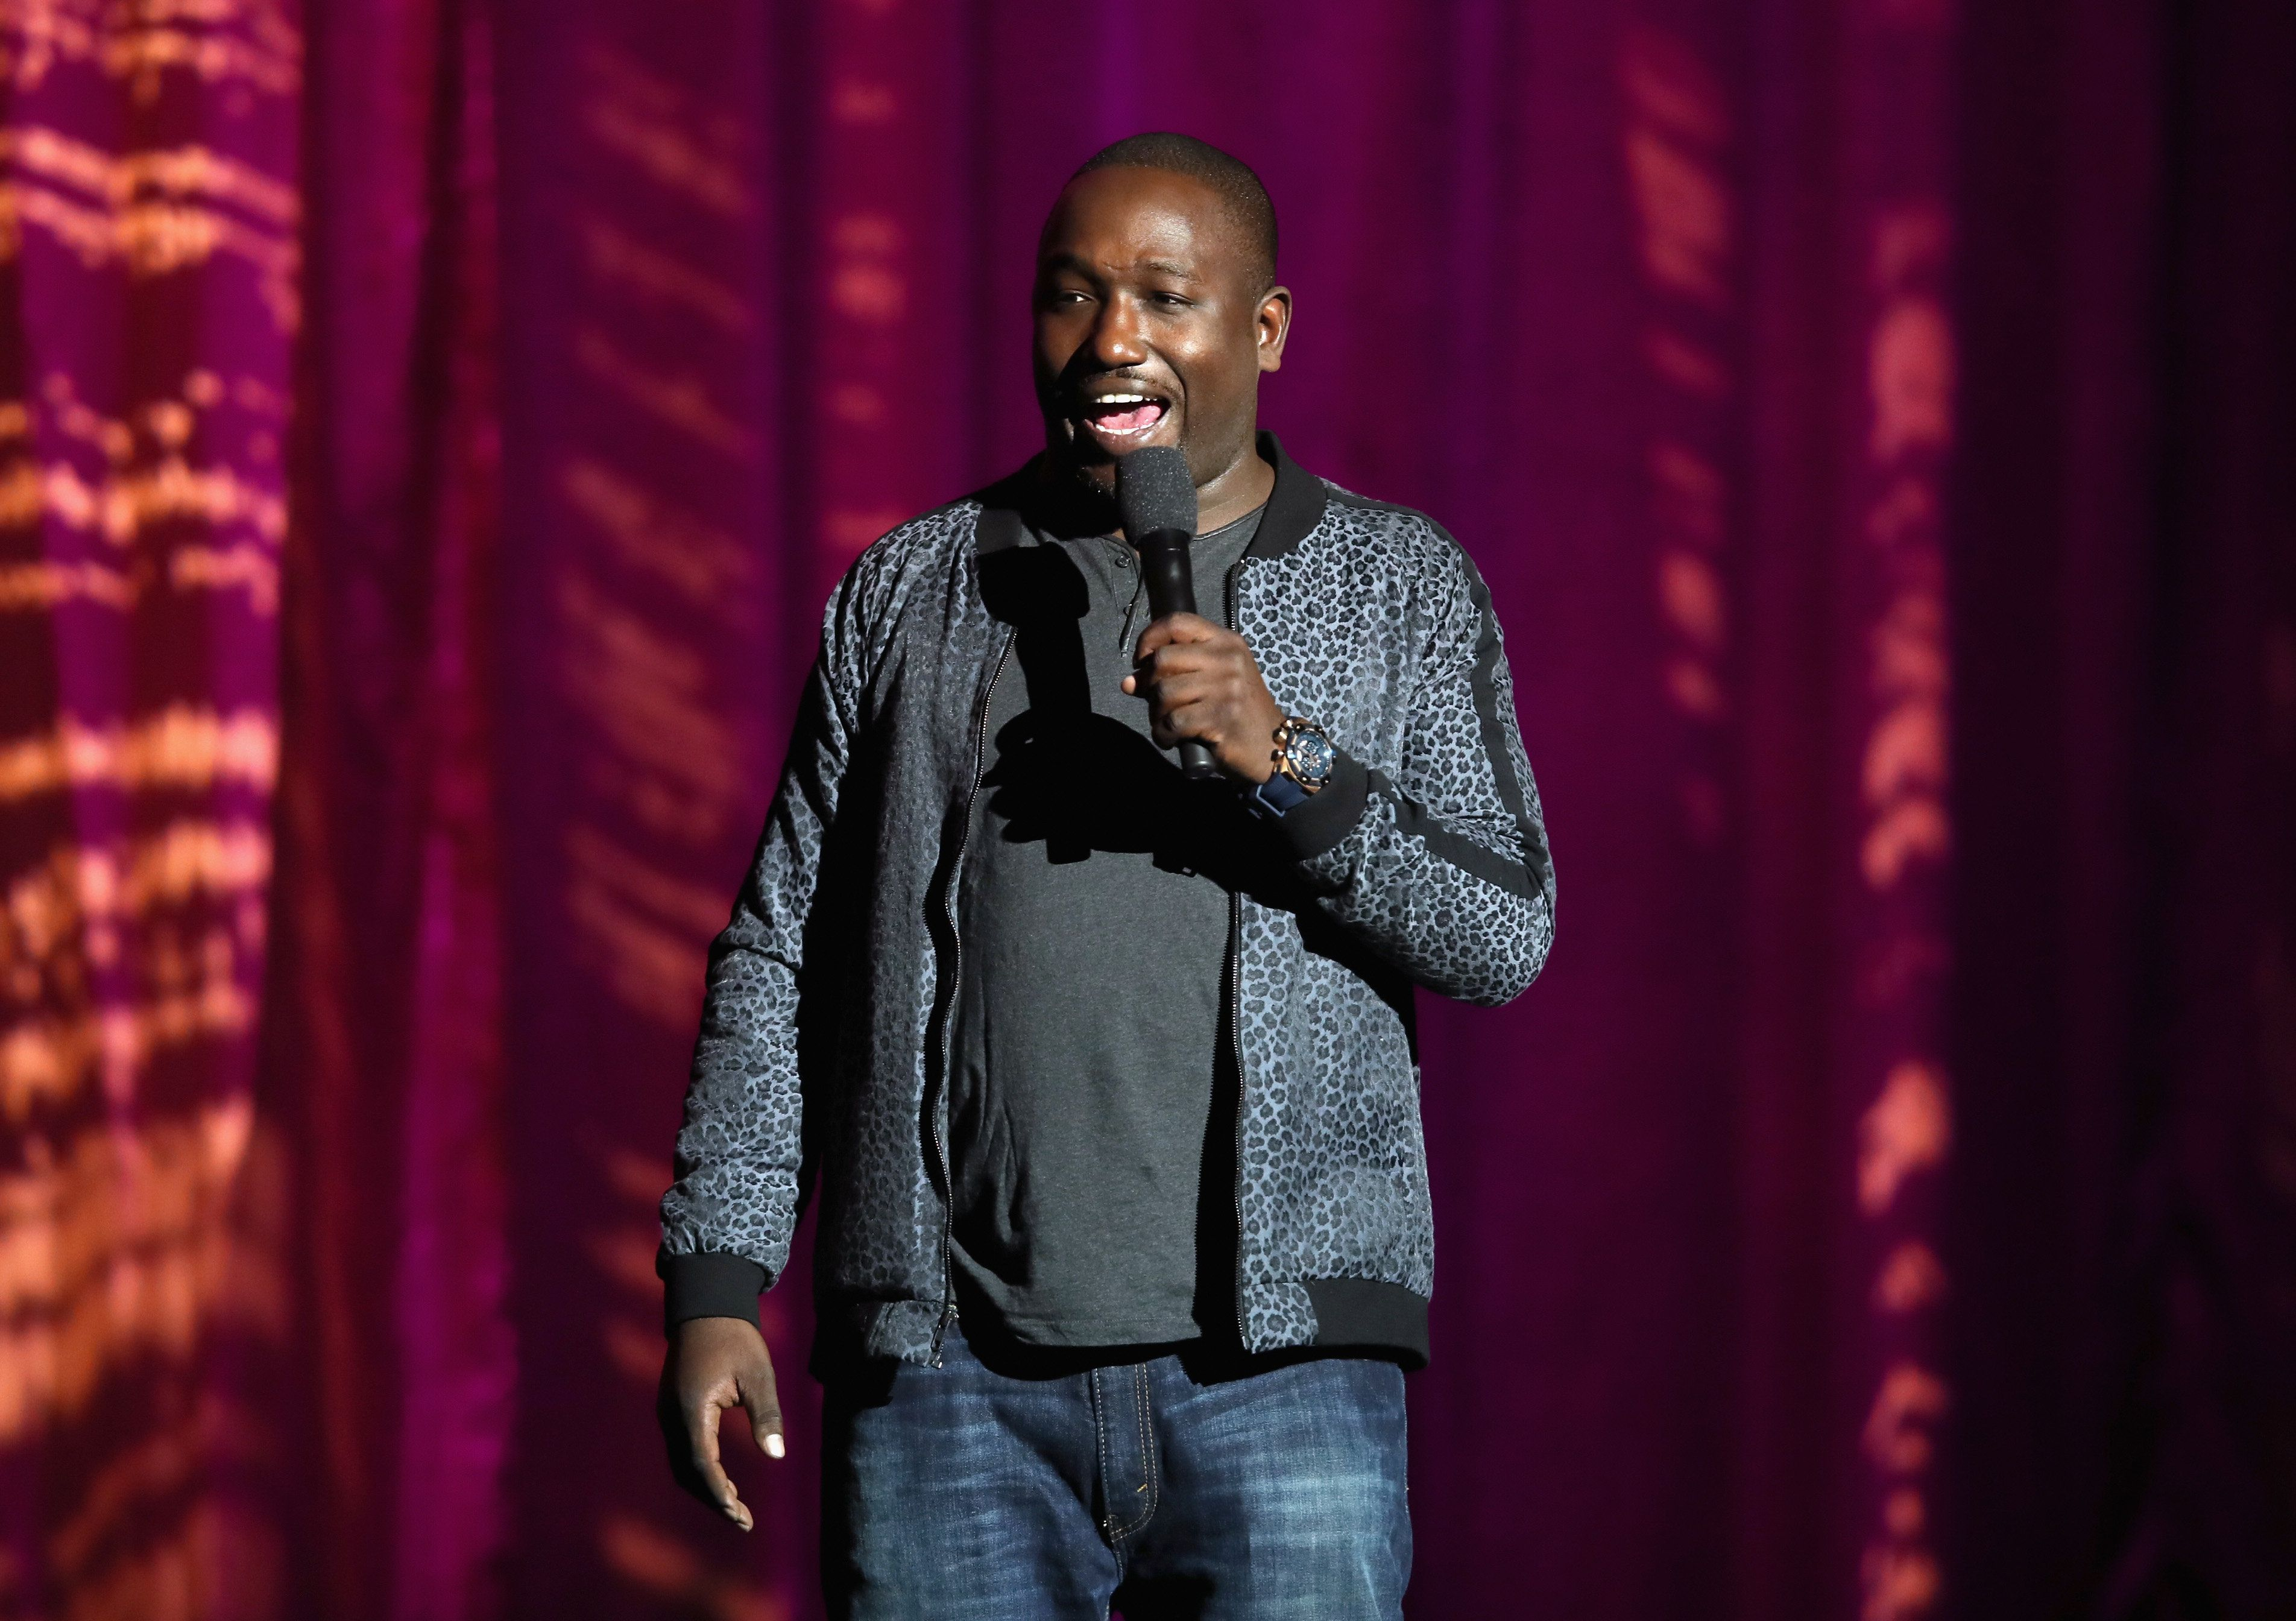 LOS ANGELES, CA - NOVEMBER 04:  Hannibal Buress performs onstage at the International Myeloma Foundation 11th Annual Comedy Celebration at The Wilshire Ebell Theatre on November 4, 2017 in Los Angeles, California.  (Photo by Brandon Williams/Getty Images for International Myeloma Foundation)